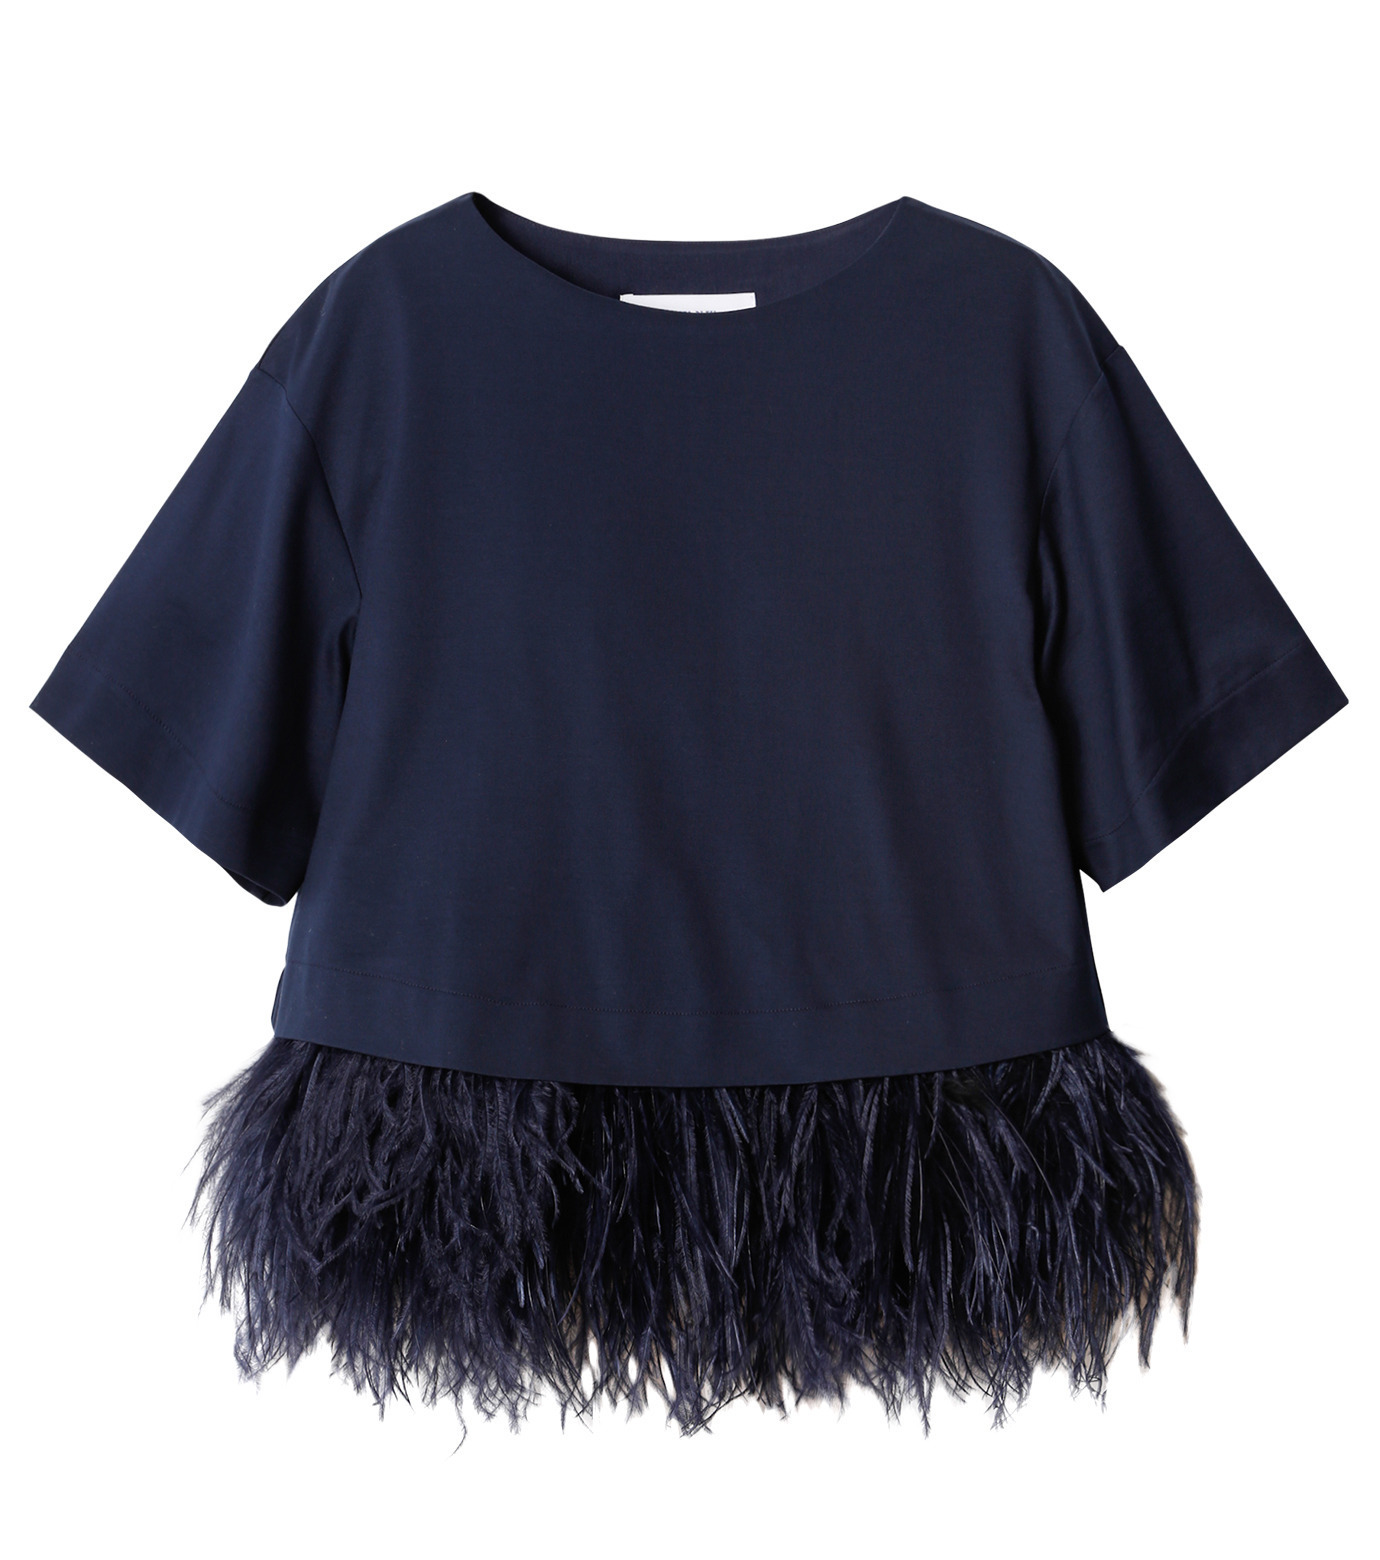 LE CIEL BLEU(ルシェルブルー)のフェザートップス-NAVY(カットソー/cut and sewn)-18A63019 拡大詳細画像1